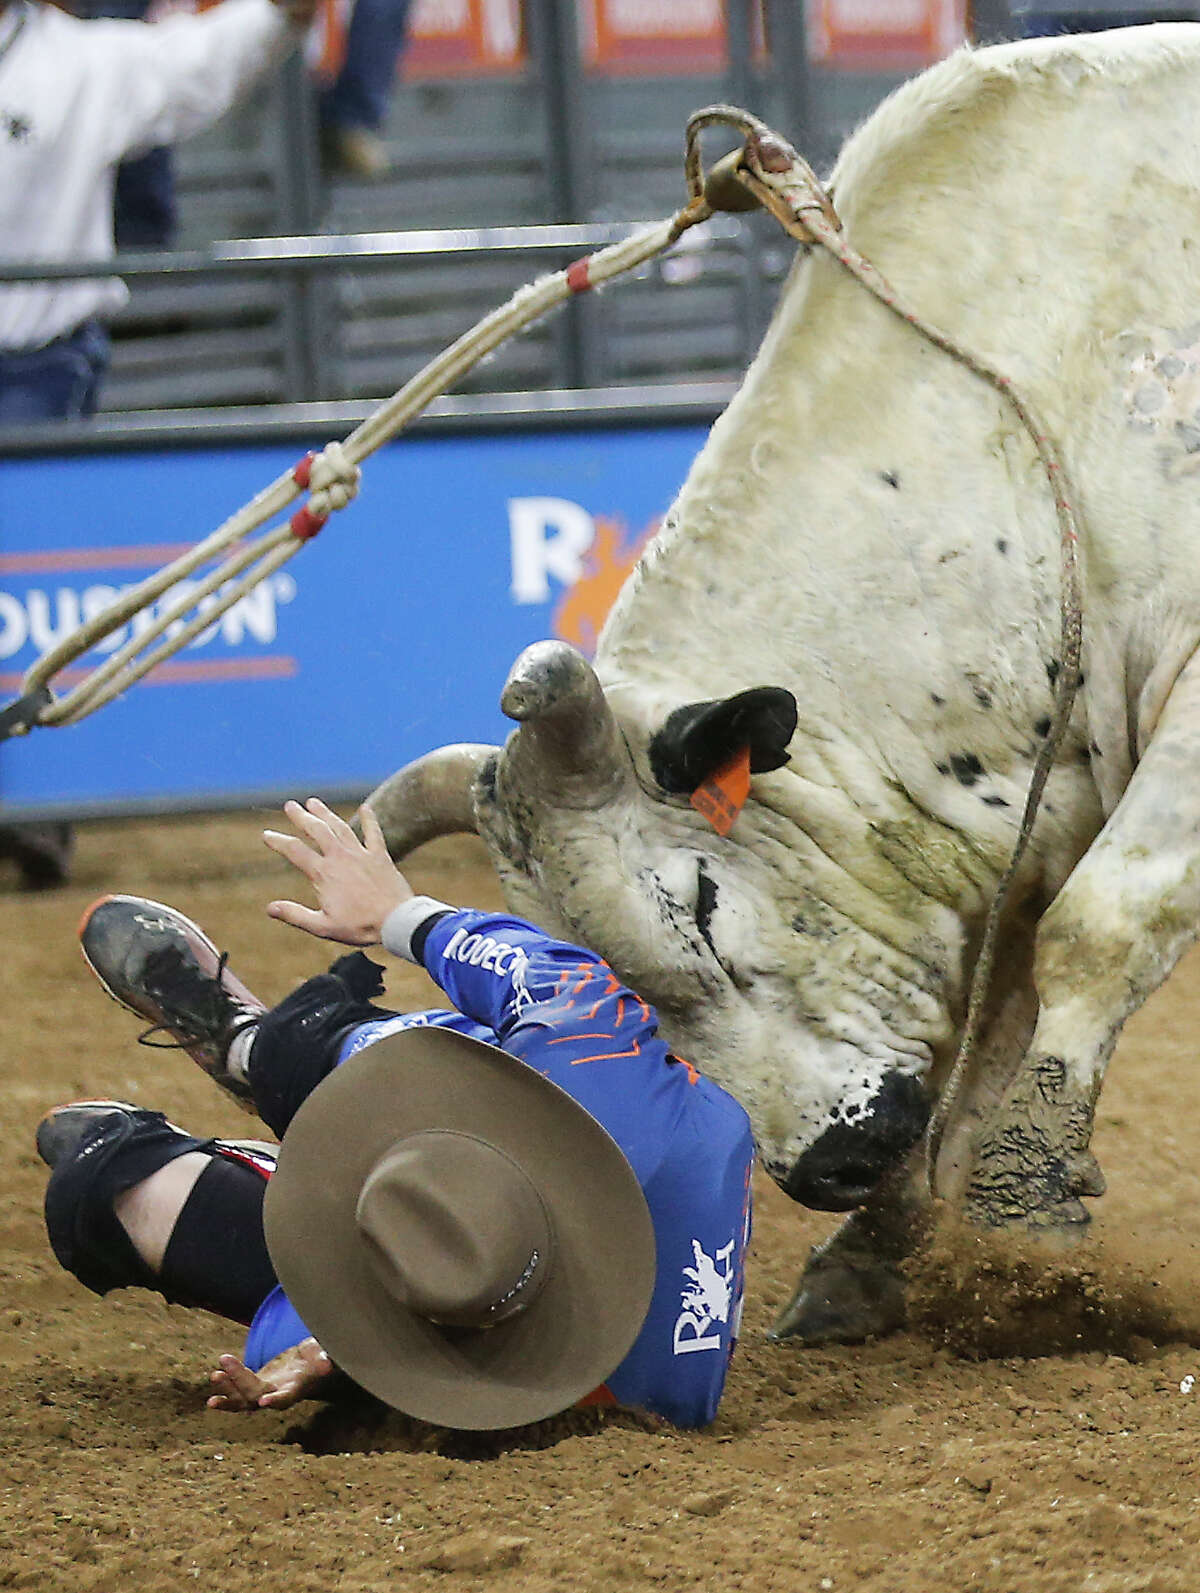 Bullfighter Cody Webster is hit by Hambone after Trevor Kastner's ride during RodeoHouston Semifinal 2 at NRG Stadium on Thursday, March 14, 2019, in Houston.